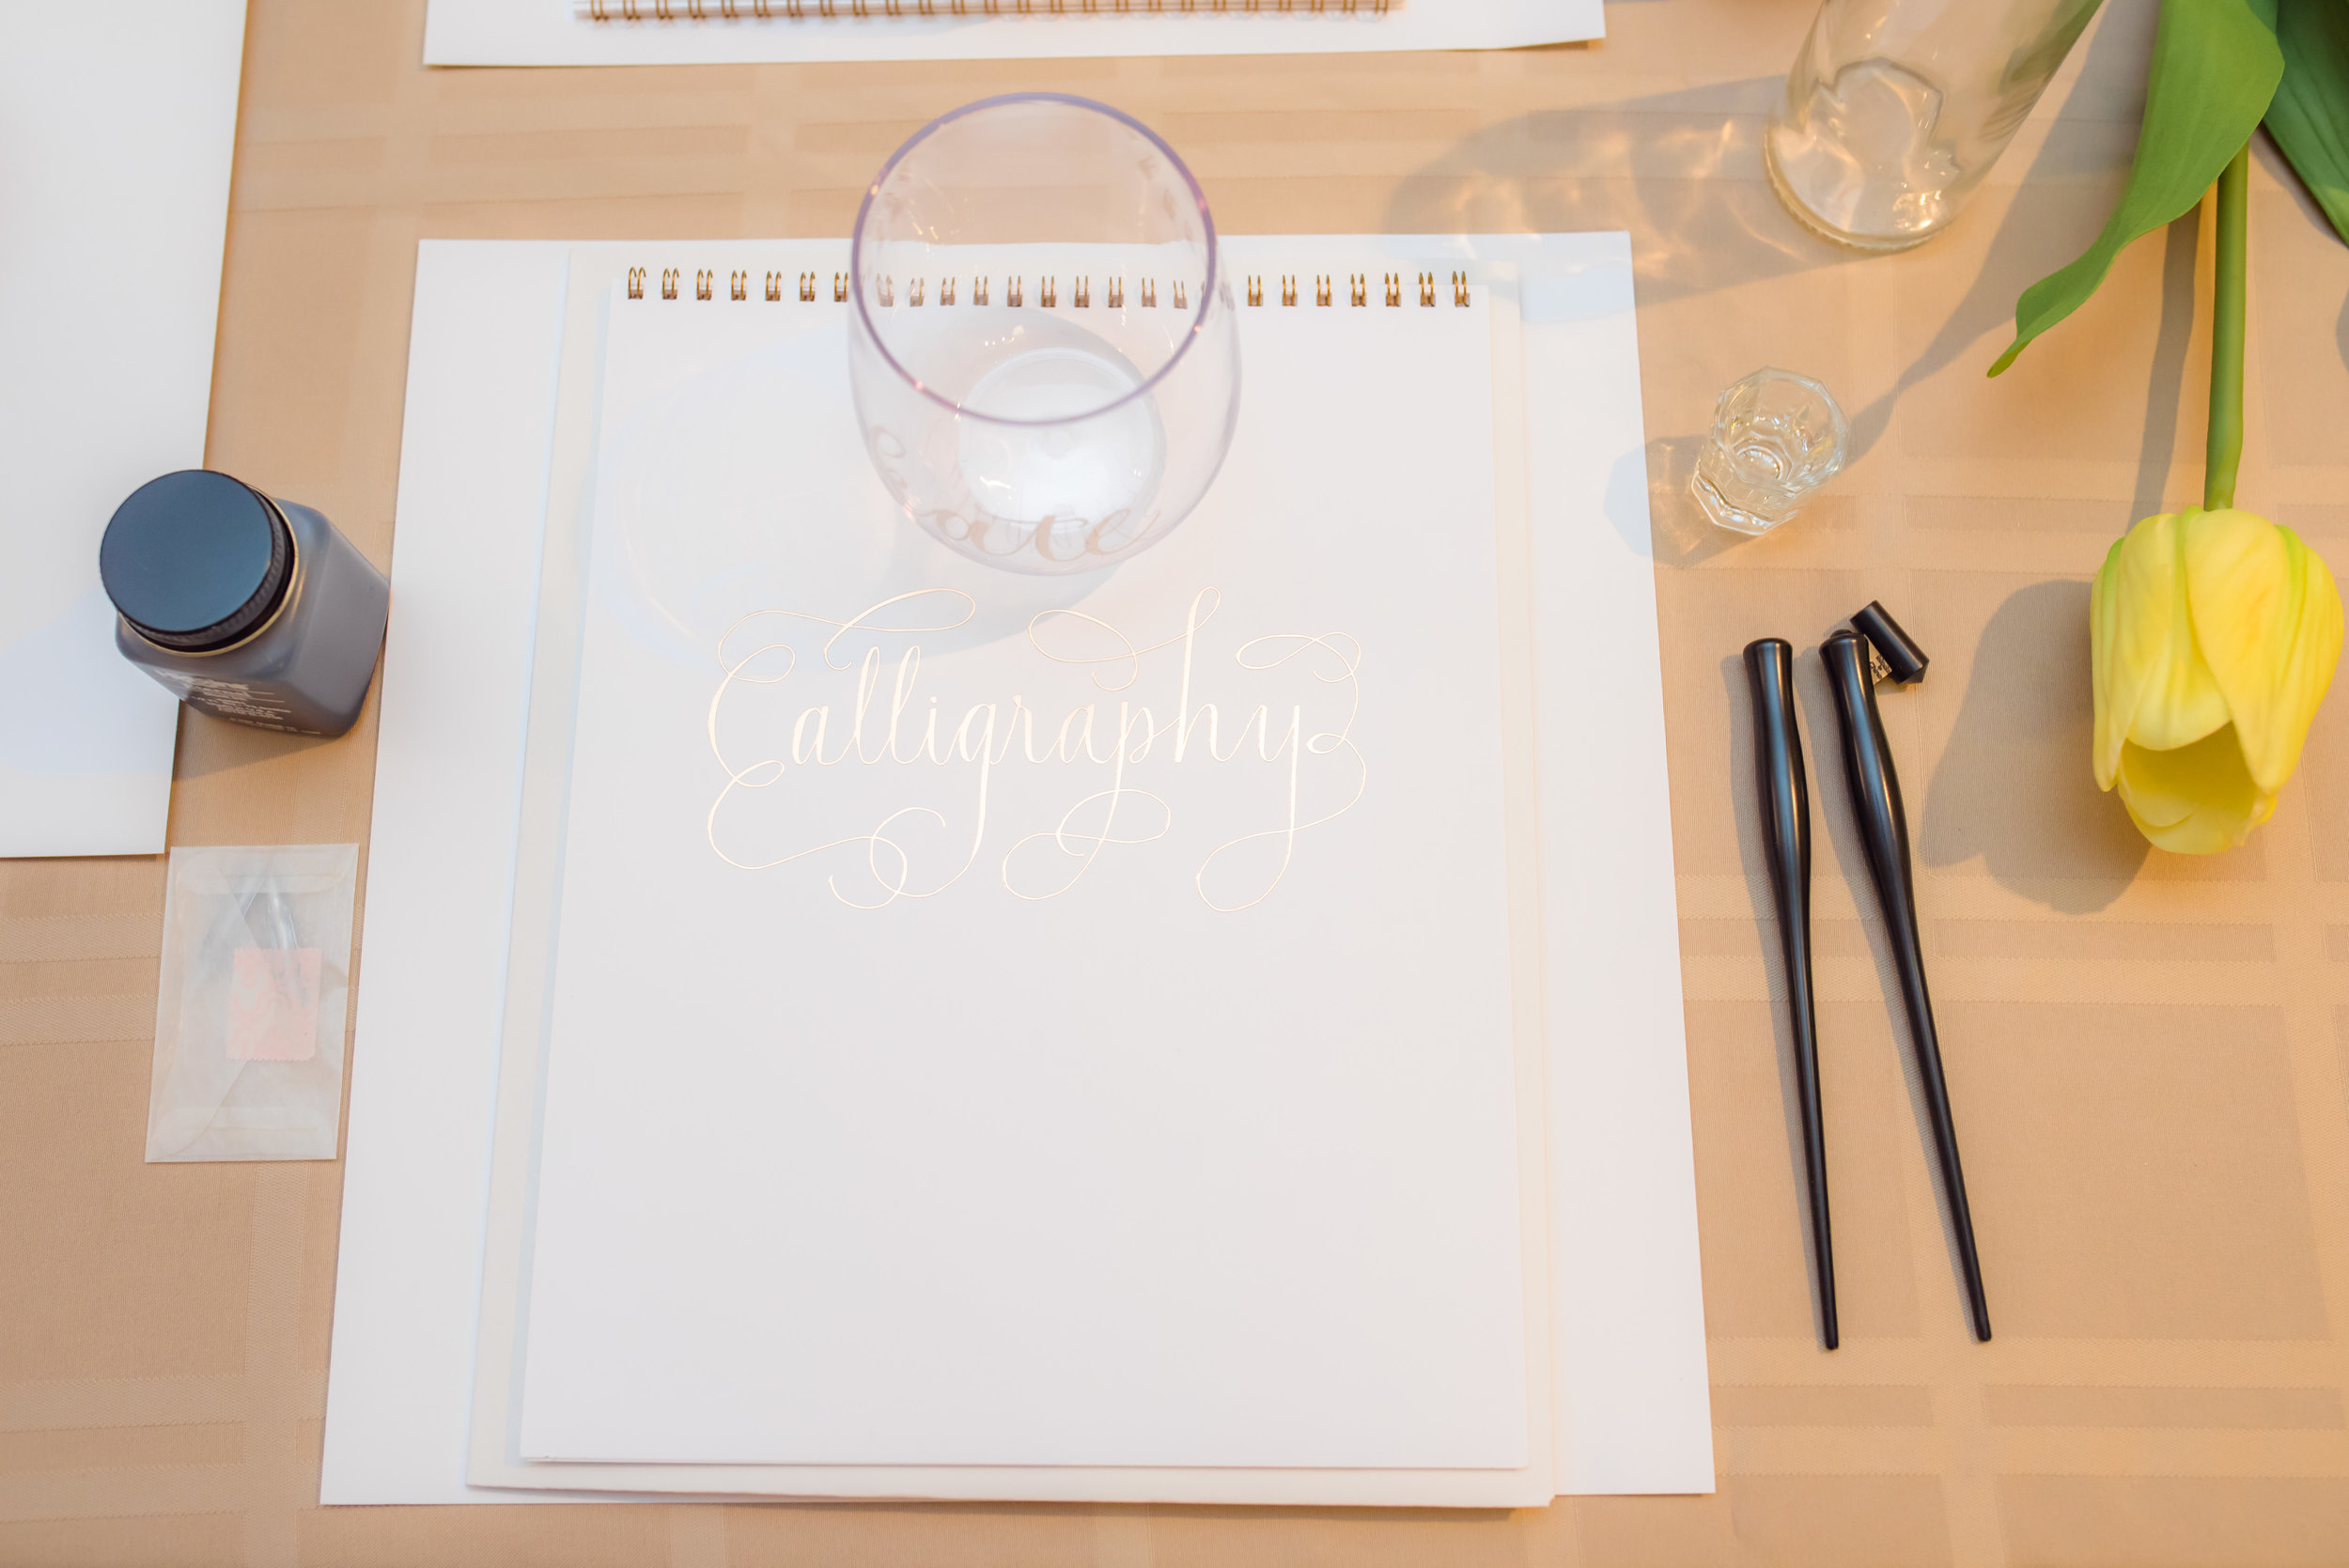 GALLERY-2016-04-06LovelyScribeCalligraphyWorkshop-9702-10.jpg